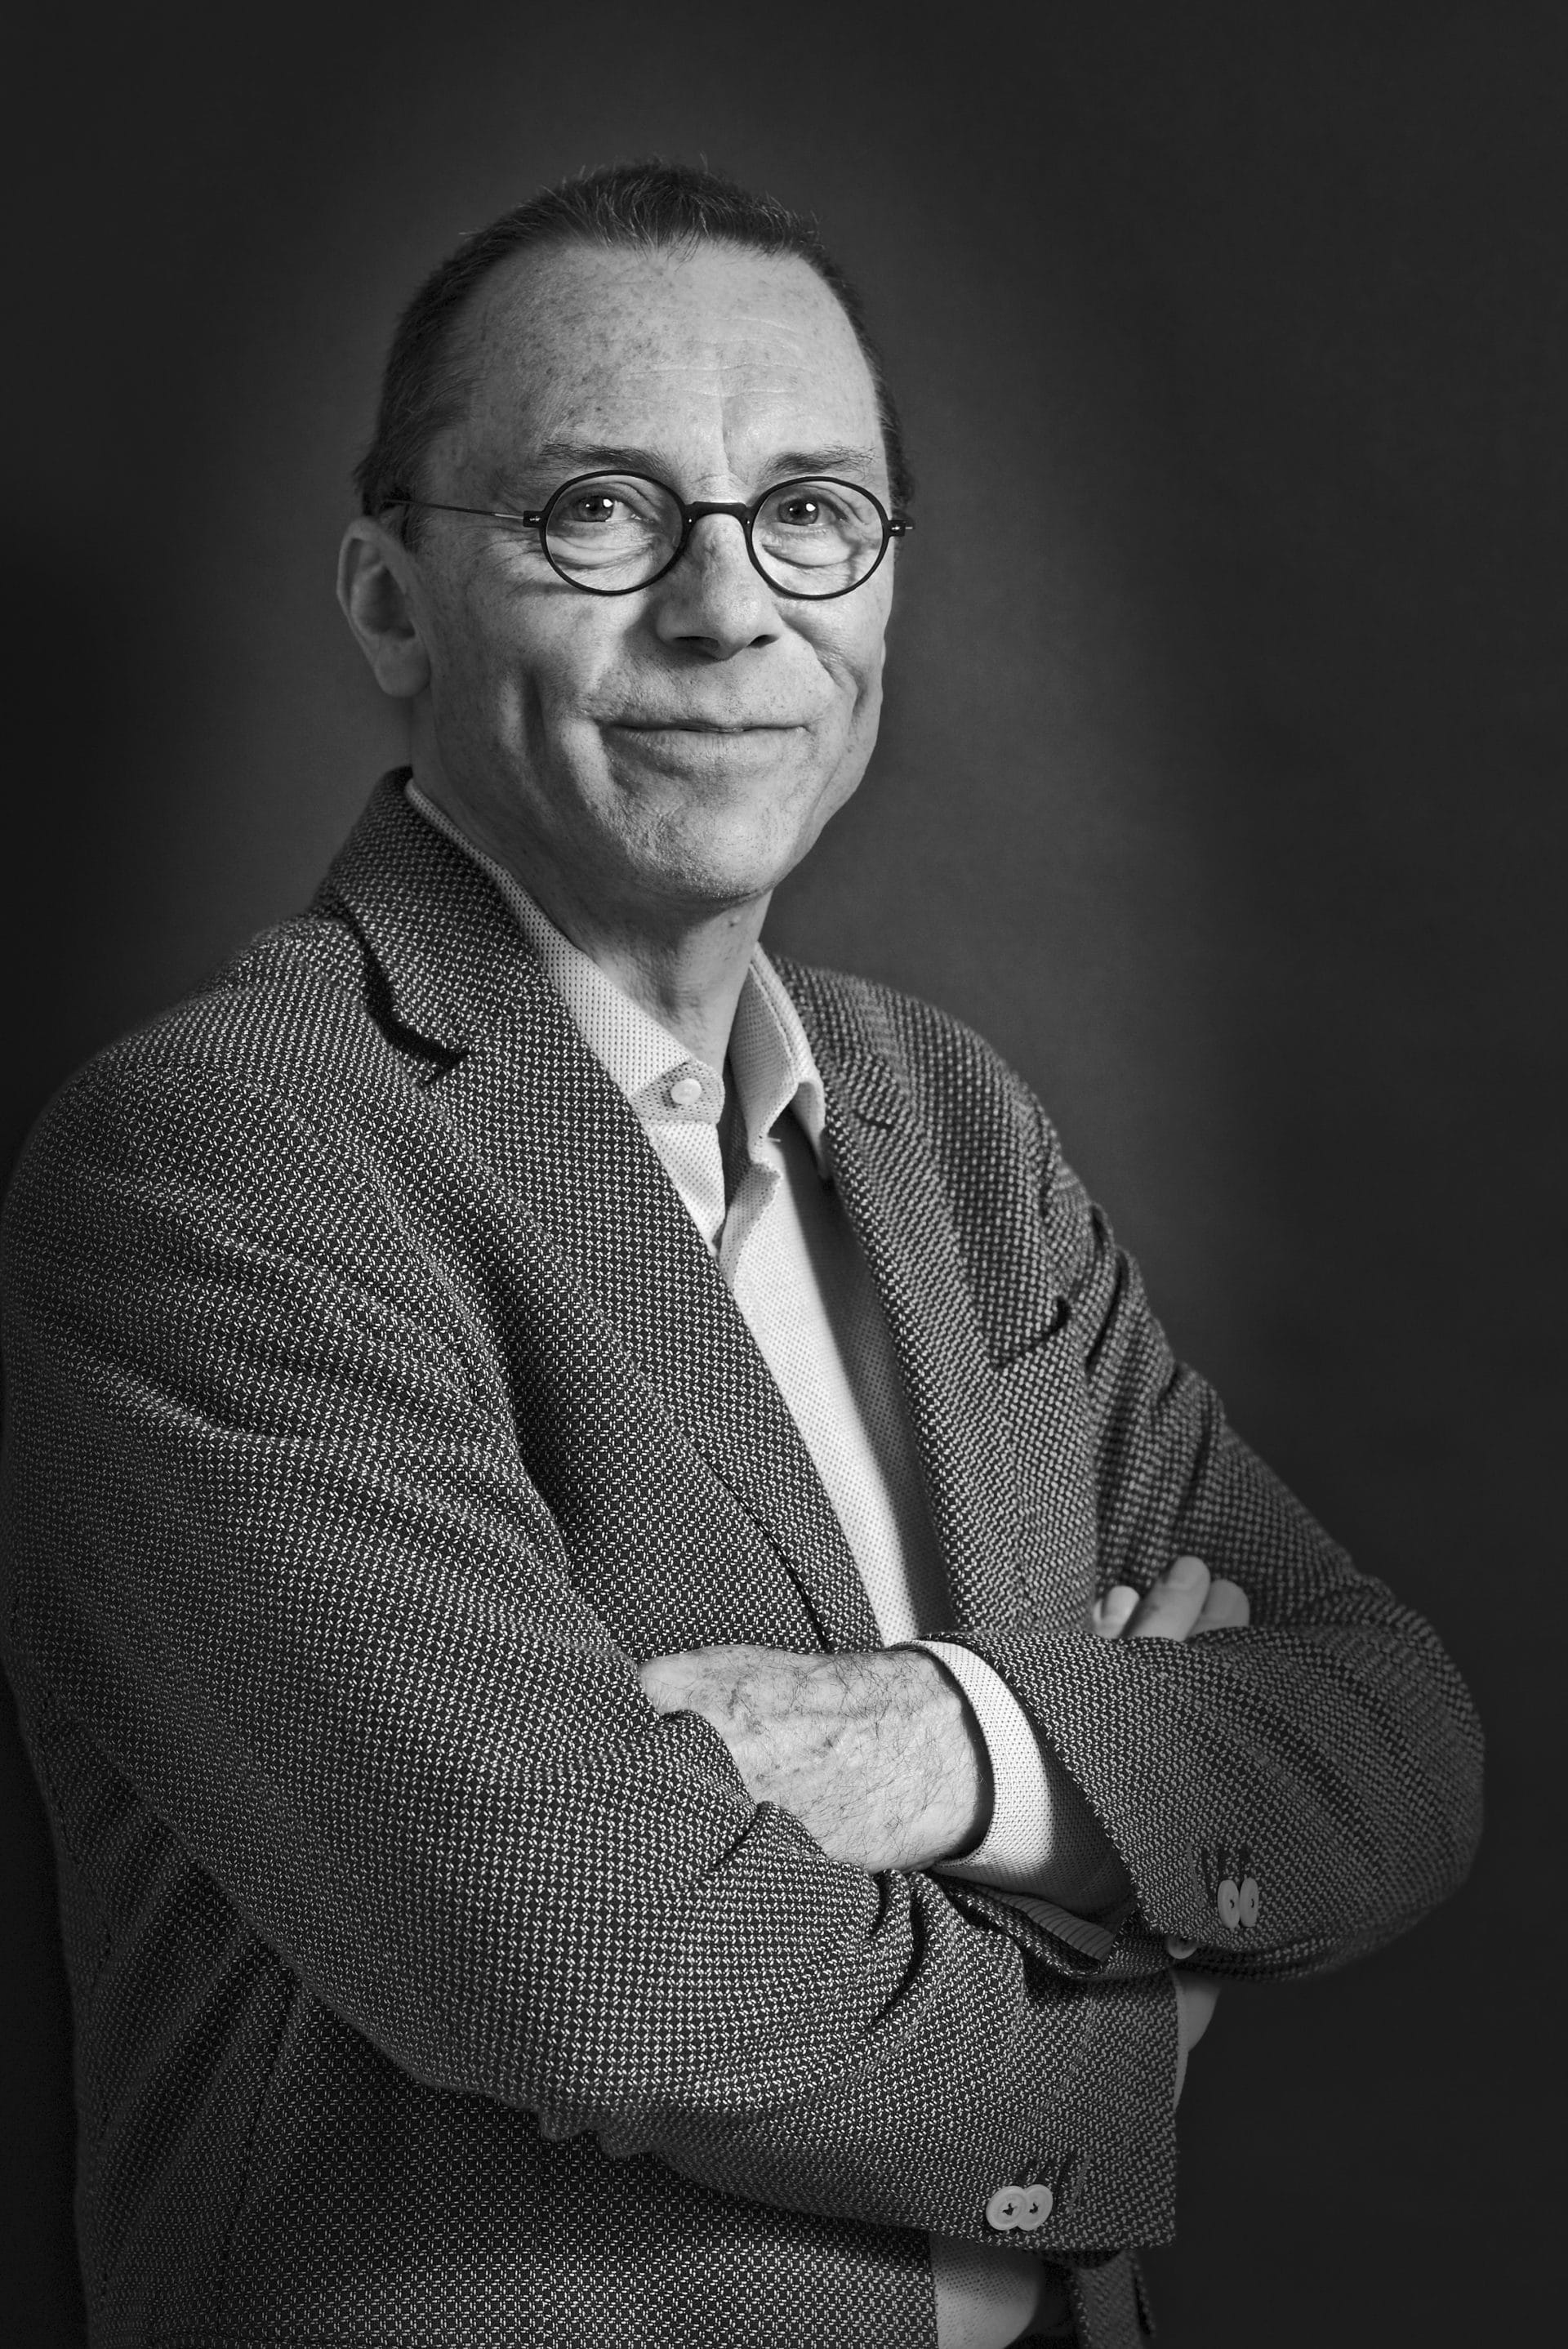 MARC BUYSE, Chief Scientific Officer IDDI